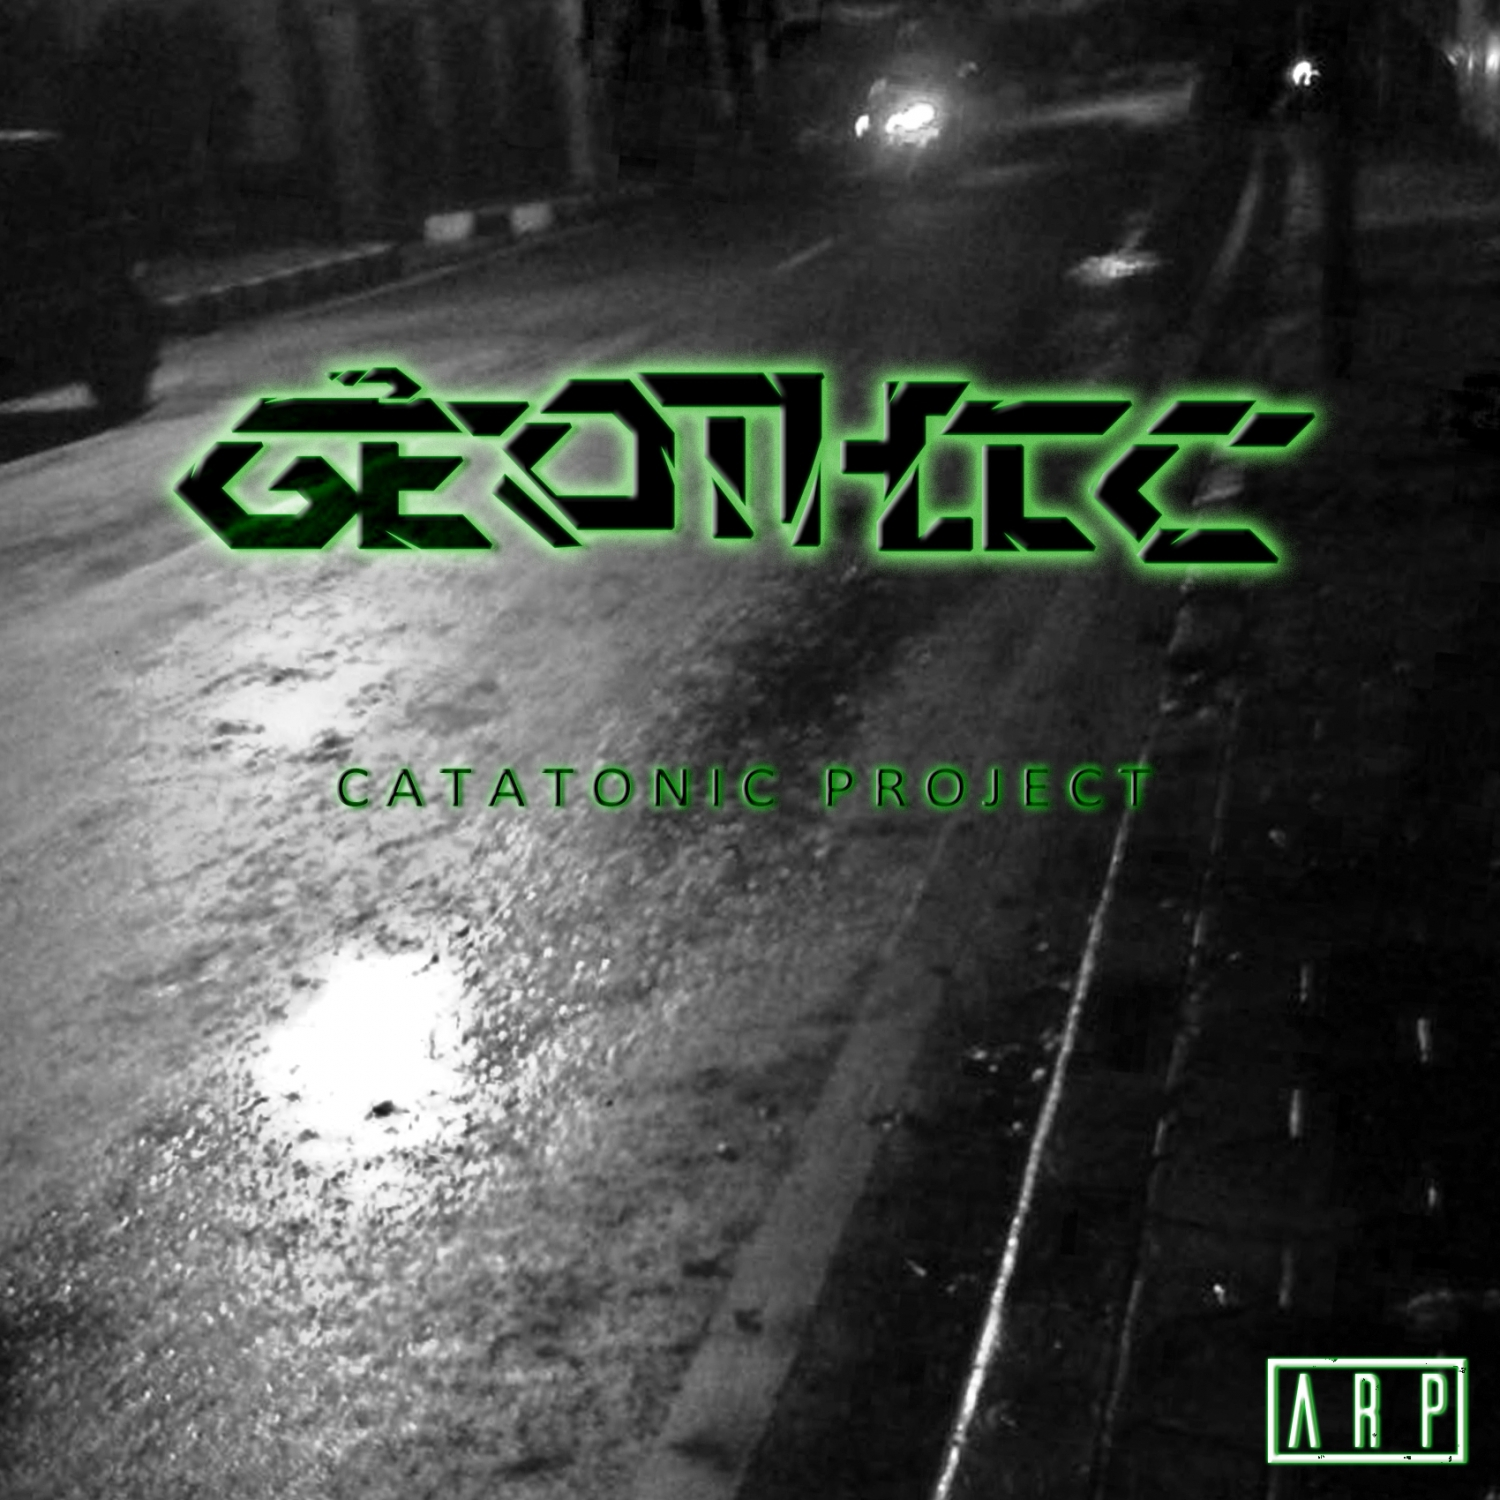 Gèothic - Catatonic Project (Original Mix)